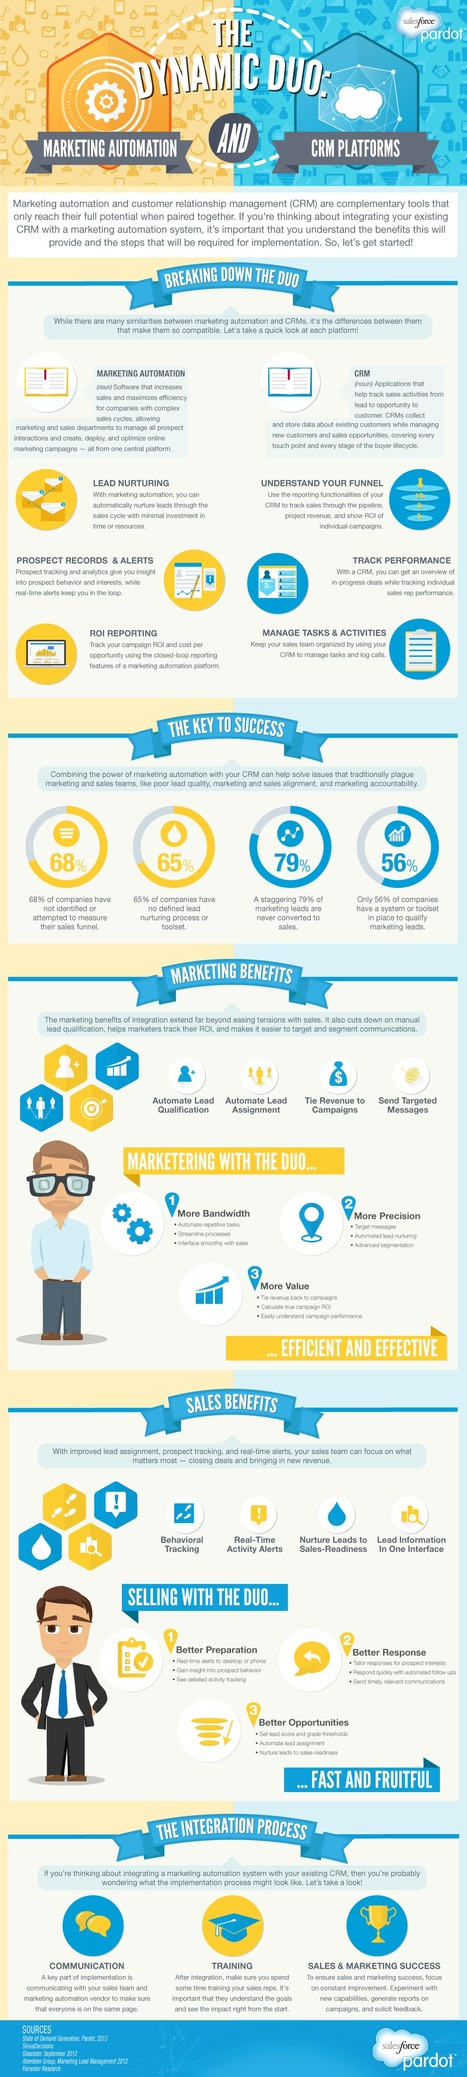 Marketing Automation & Your CRM #infographic - Pardot | #TheMarketingAutomationAlert | The Marketing Technology Alert | Scoop.it